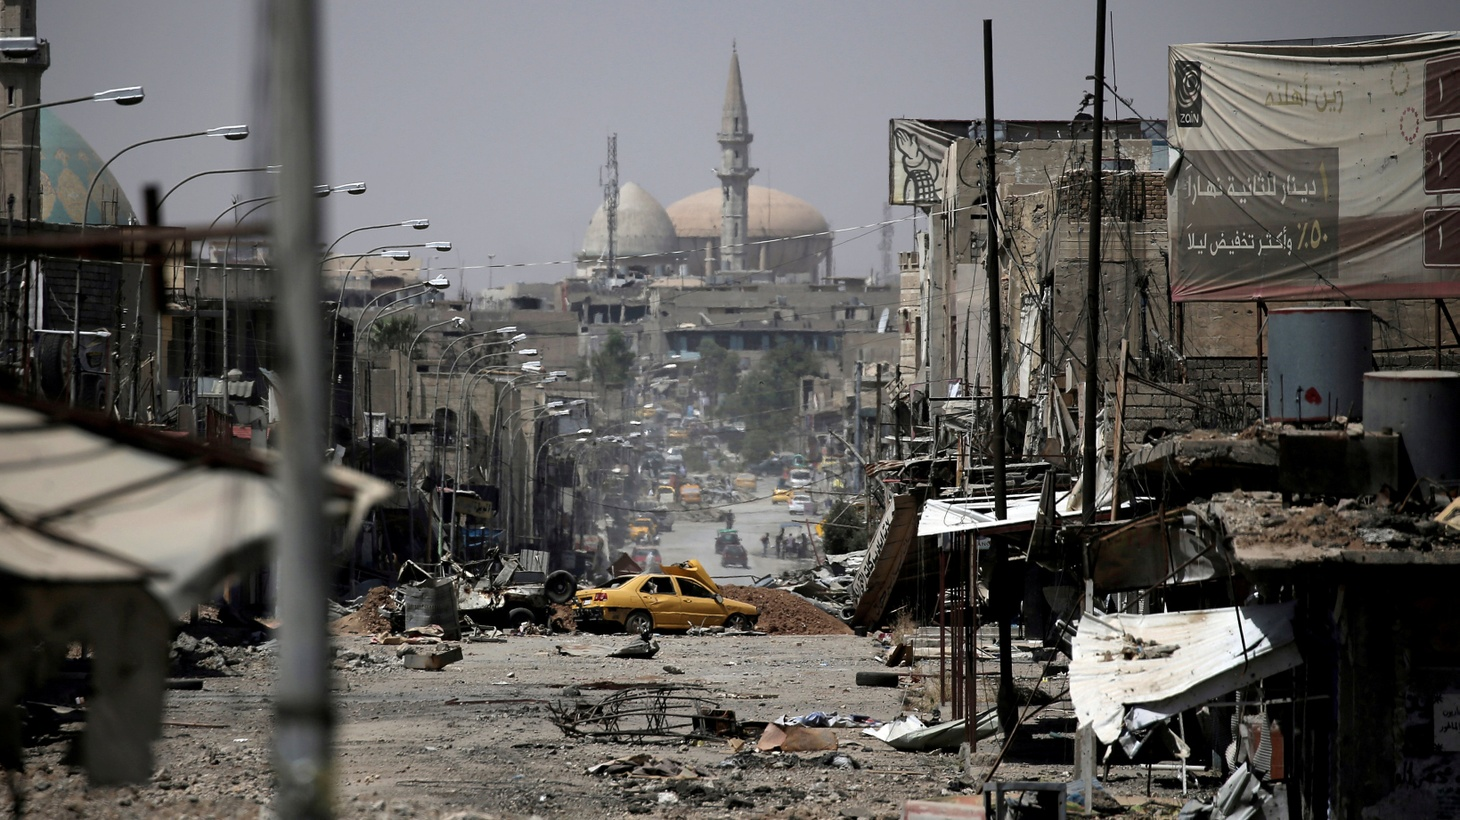 Western backed Iraqi forces have struck a blow against the Islamic State by devastating half the city of Mosul, leaving more than 700,000 refugees. Will the US and other allies help to rebuild — as ISIS violence continues?